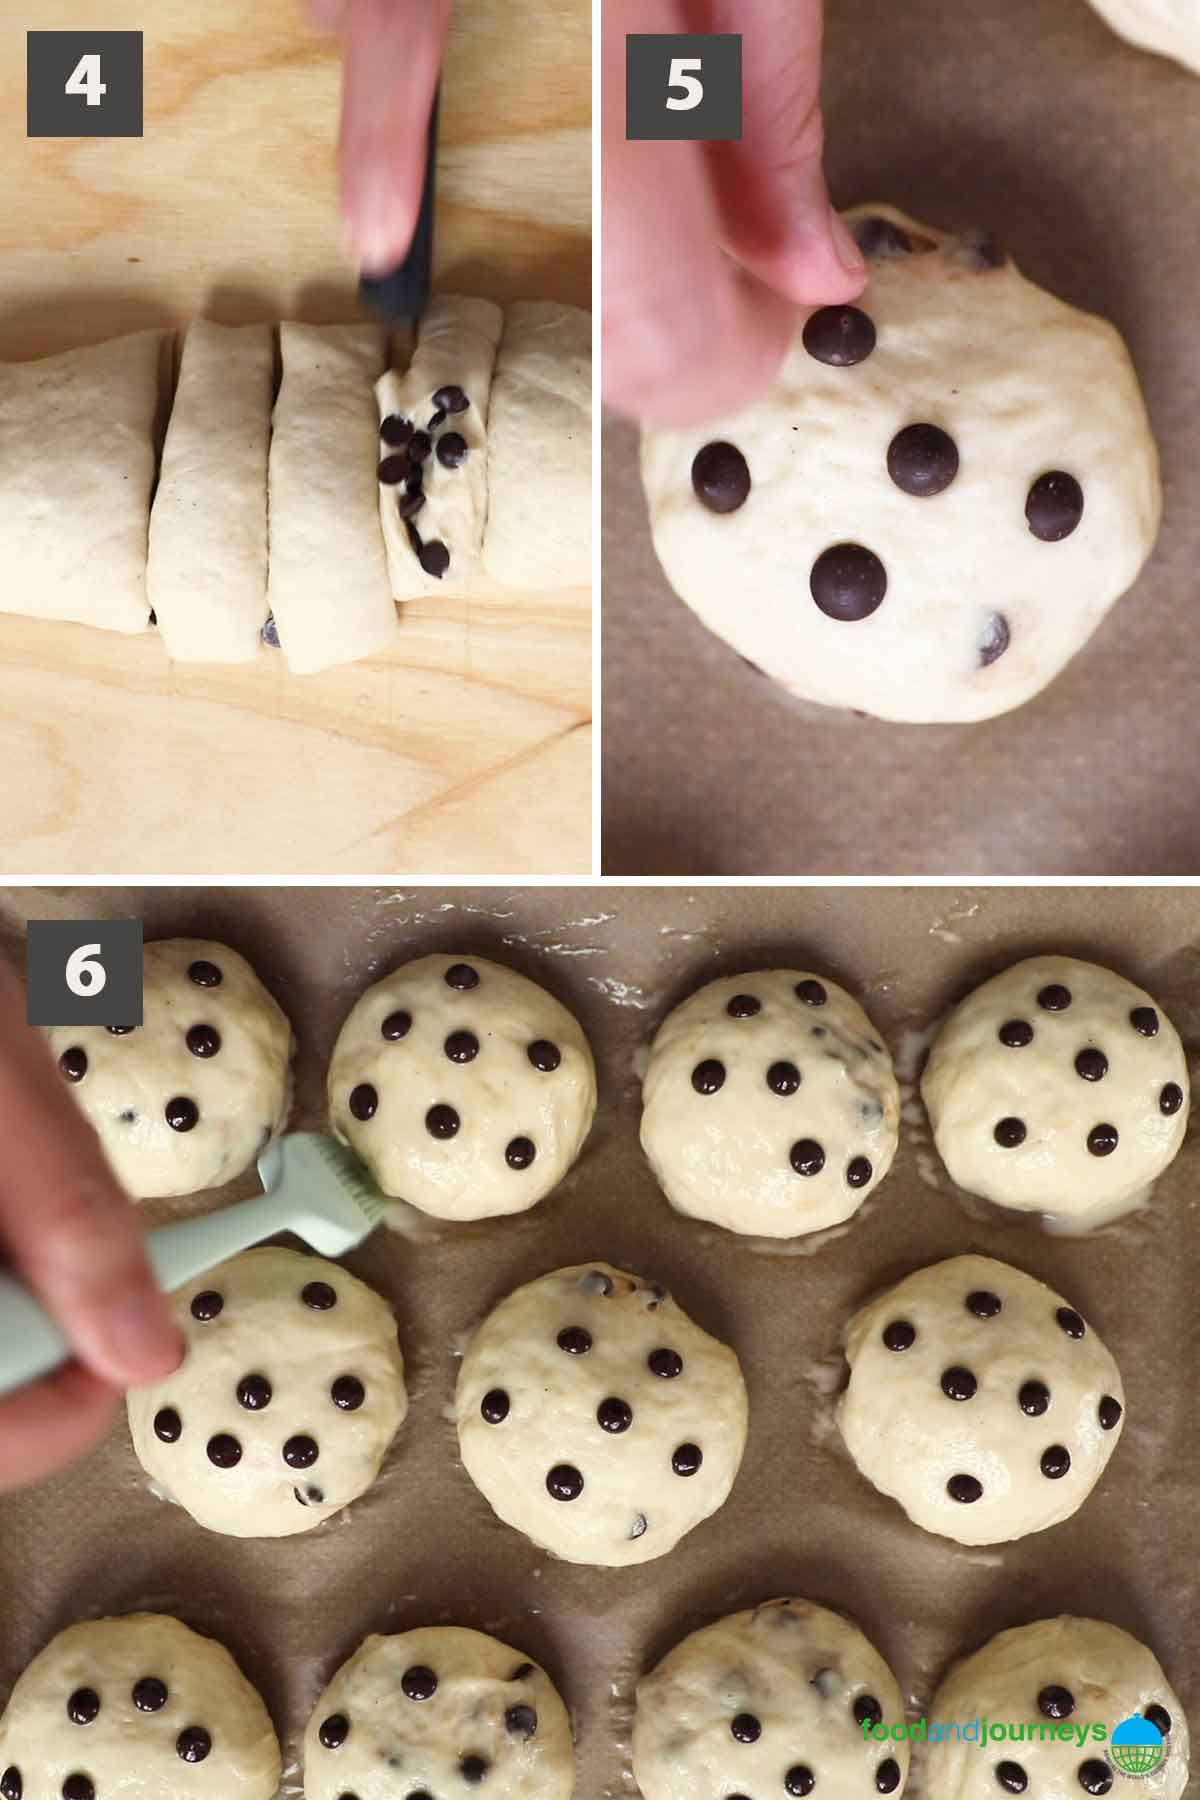 Second part of a collage of images showing the step by step process of making German chocolate buns.